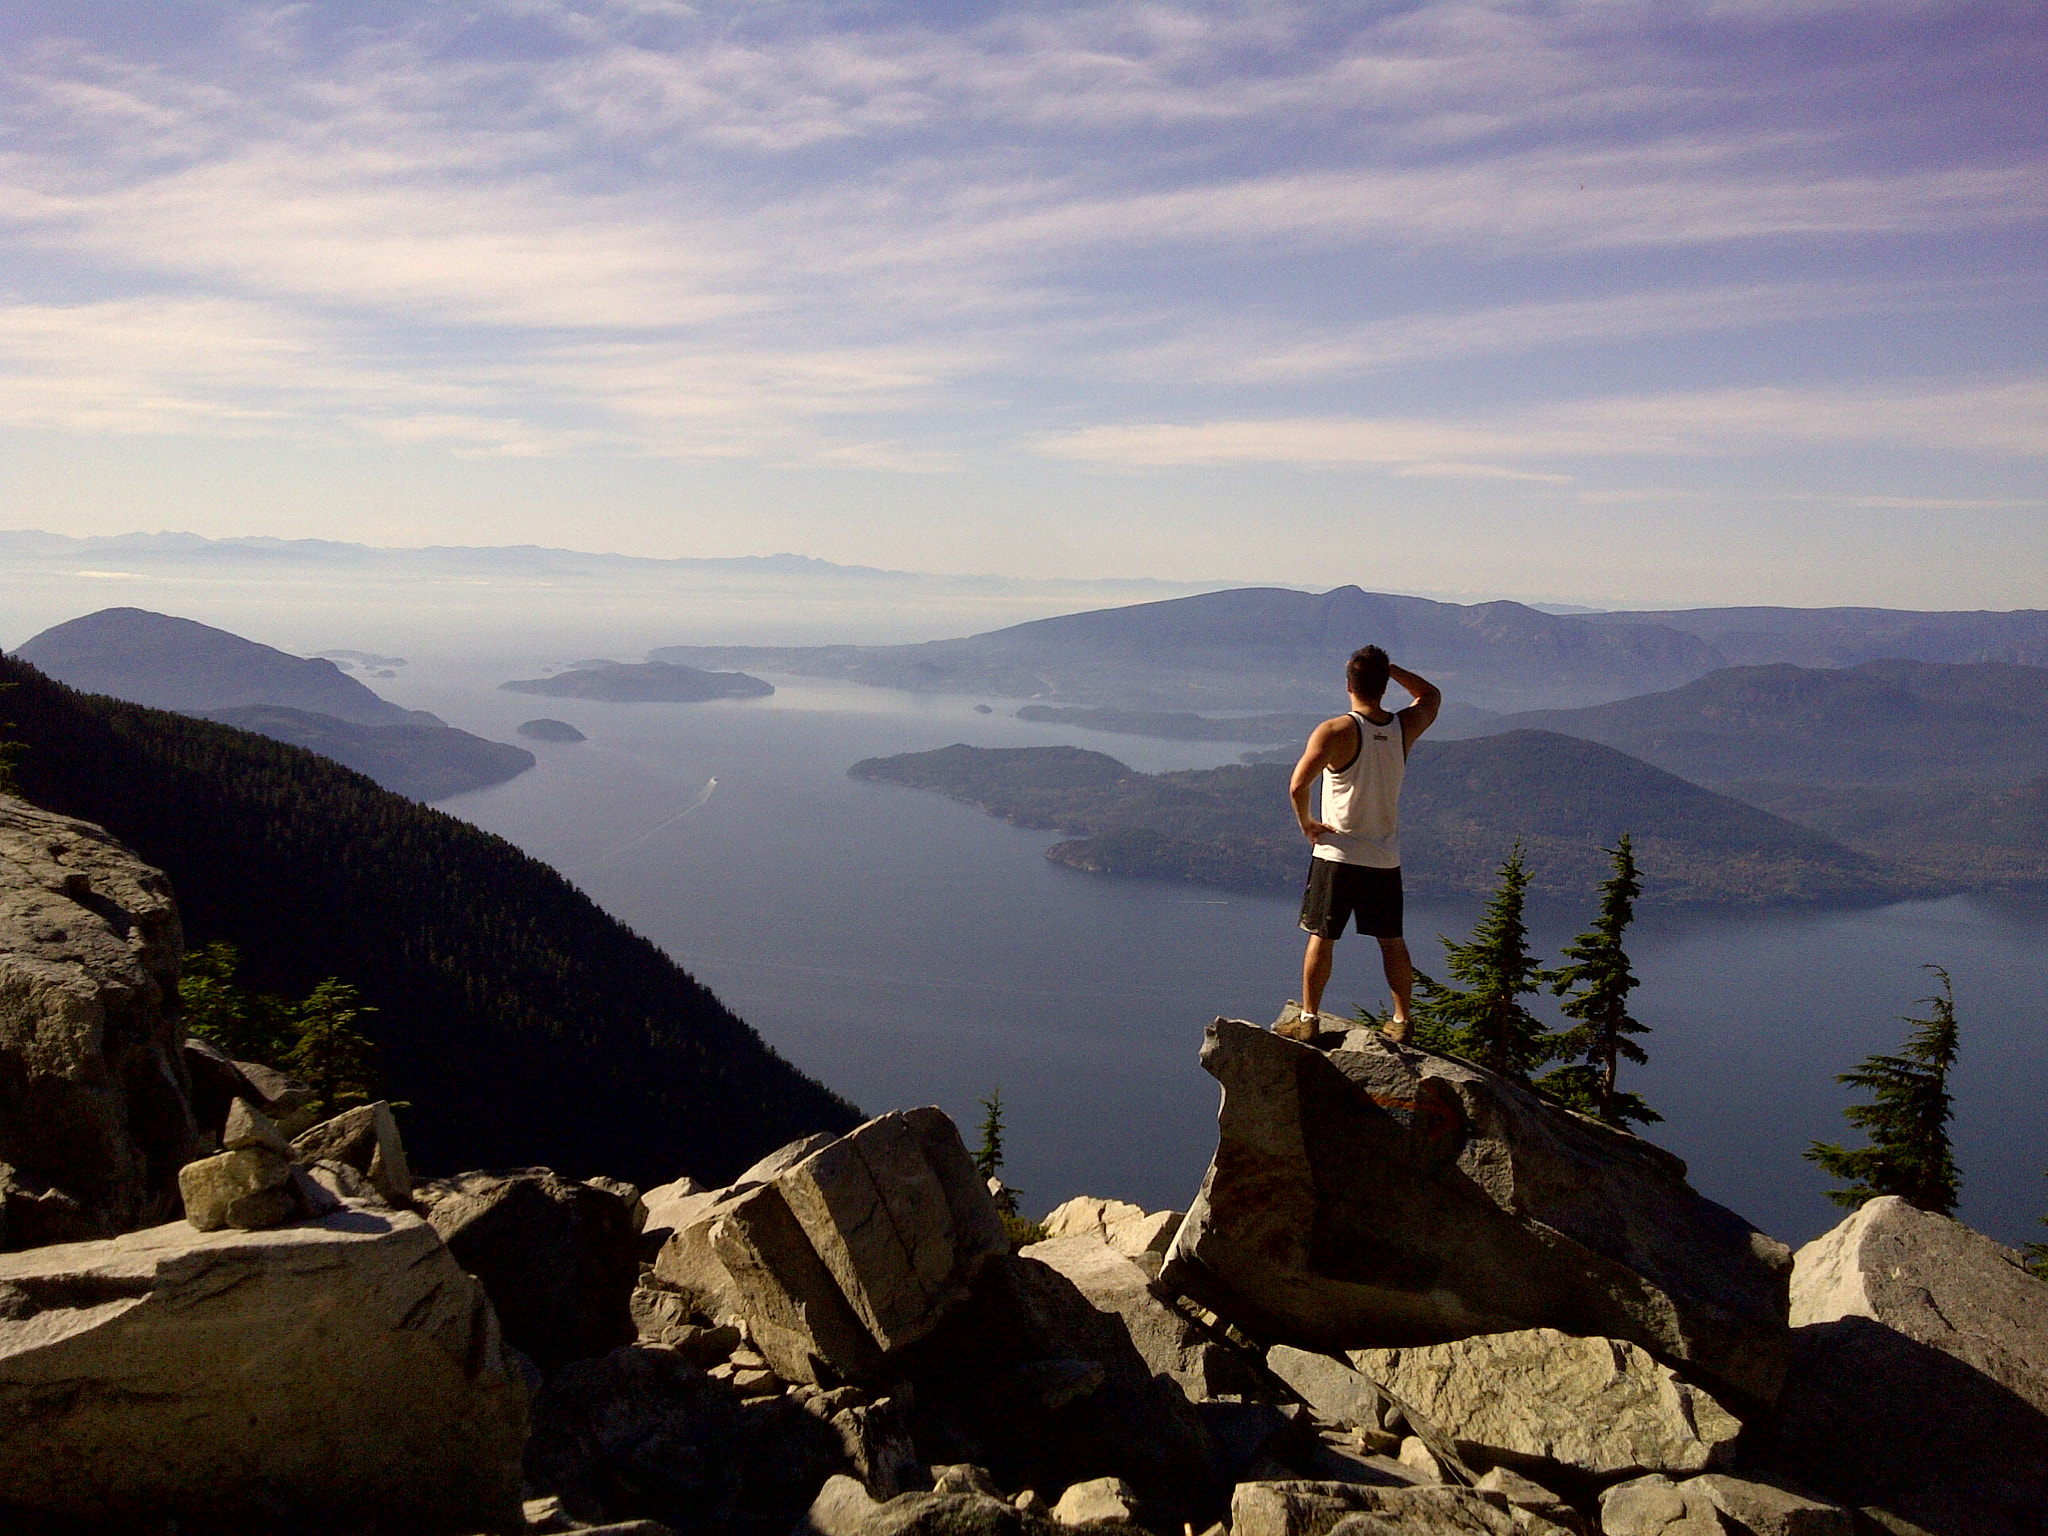 Photograph Overlooking Howe Sound from the West Lion by Alexander Trinh on 500px